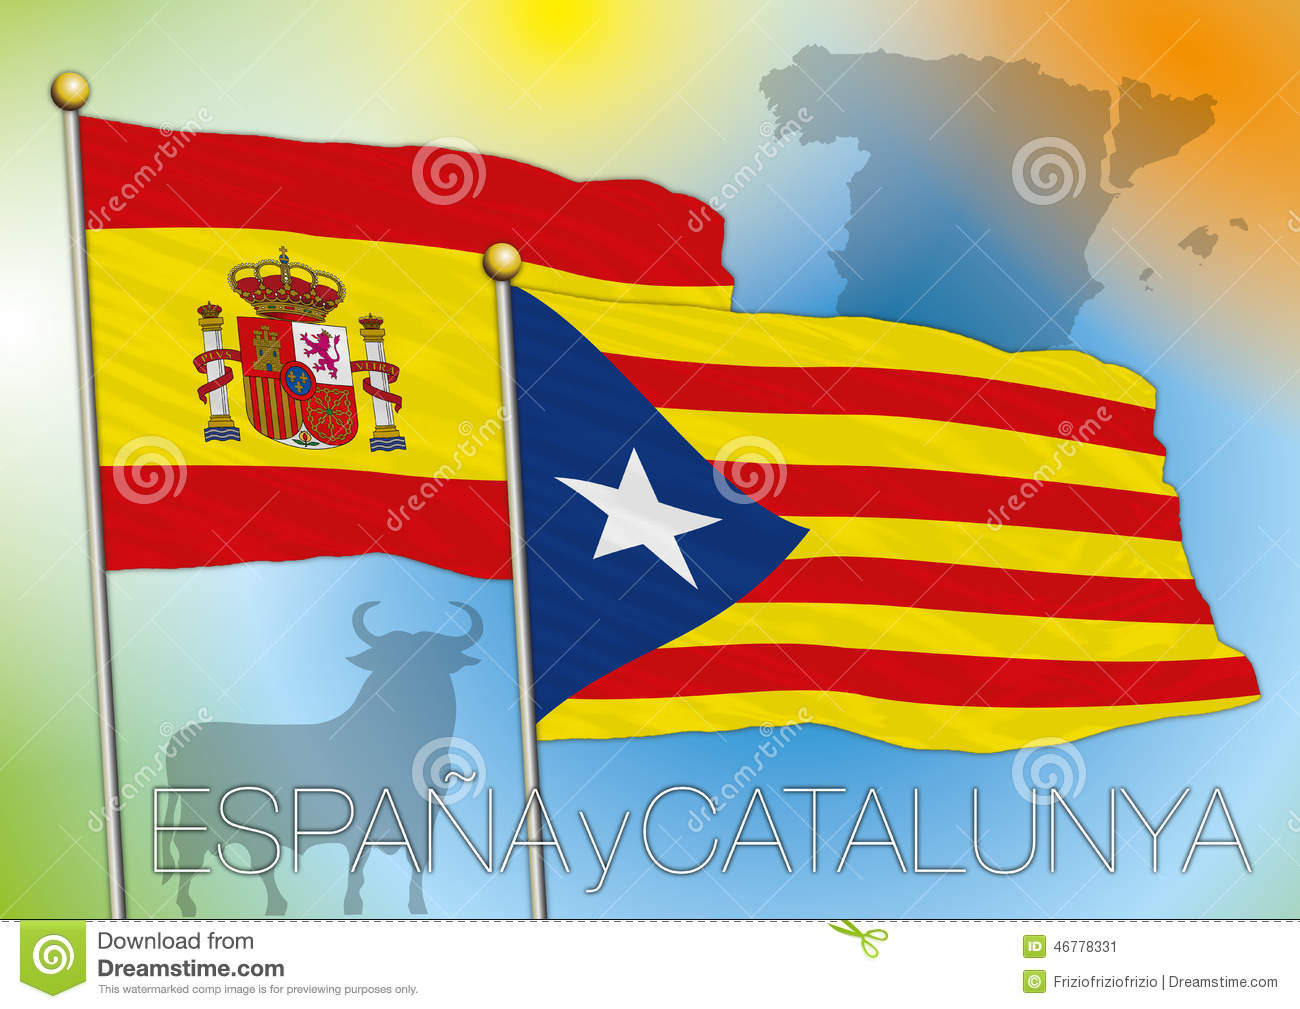 90 Vote Yes For Catalonia Independence Newswire Law